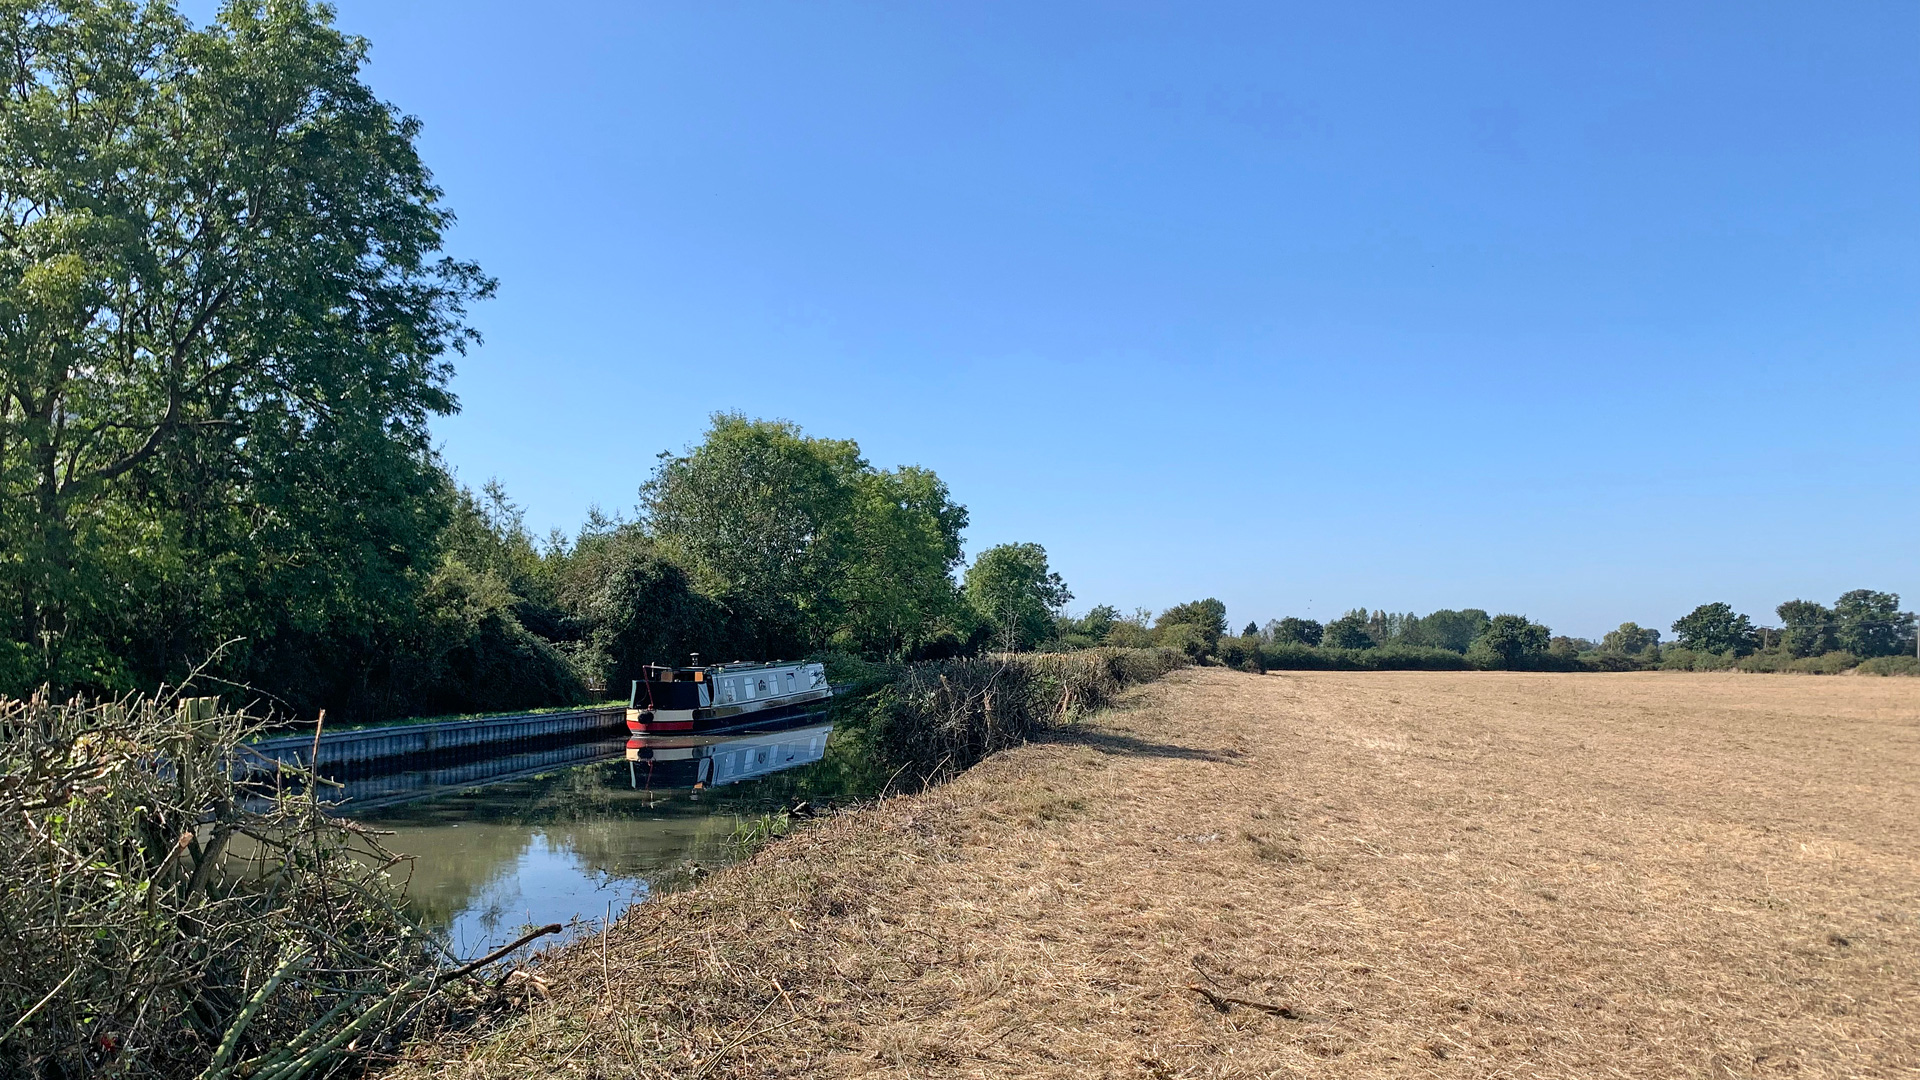 Land for sale on the Grand Union Canal